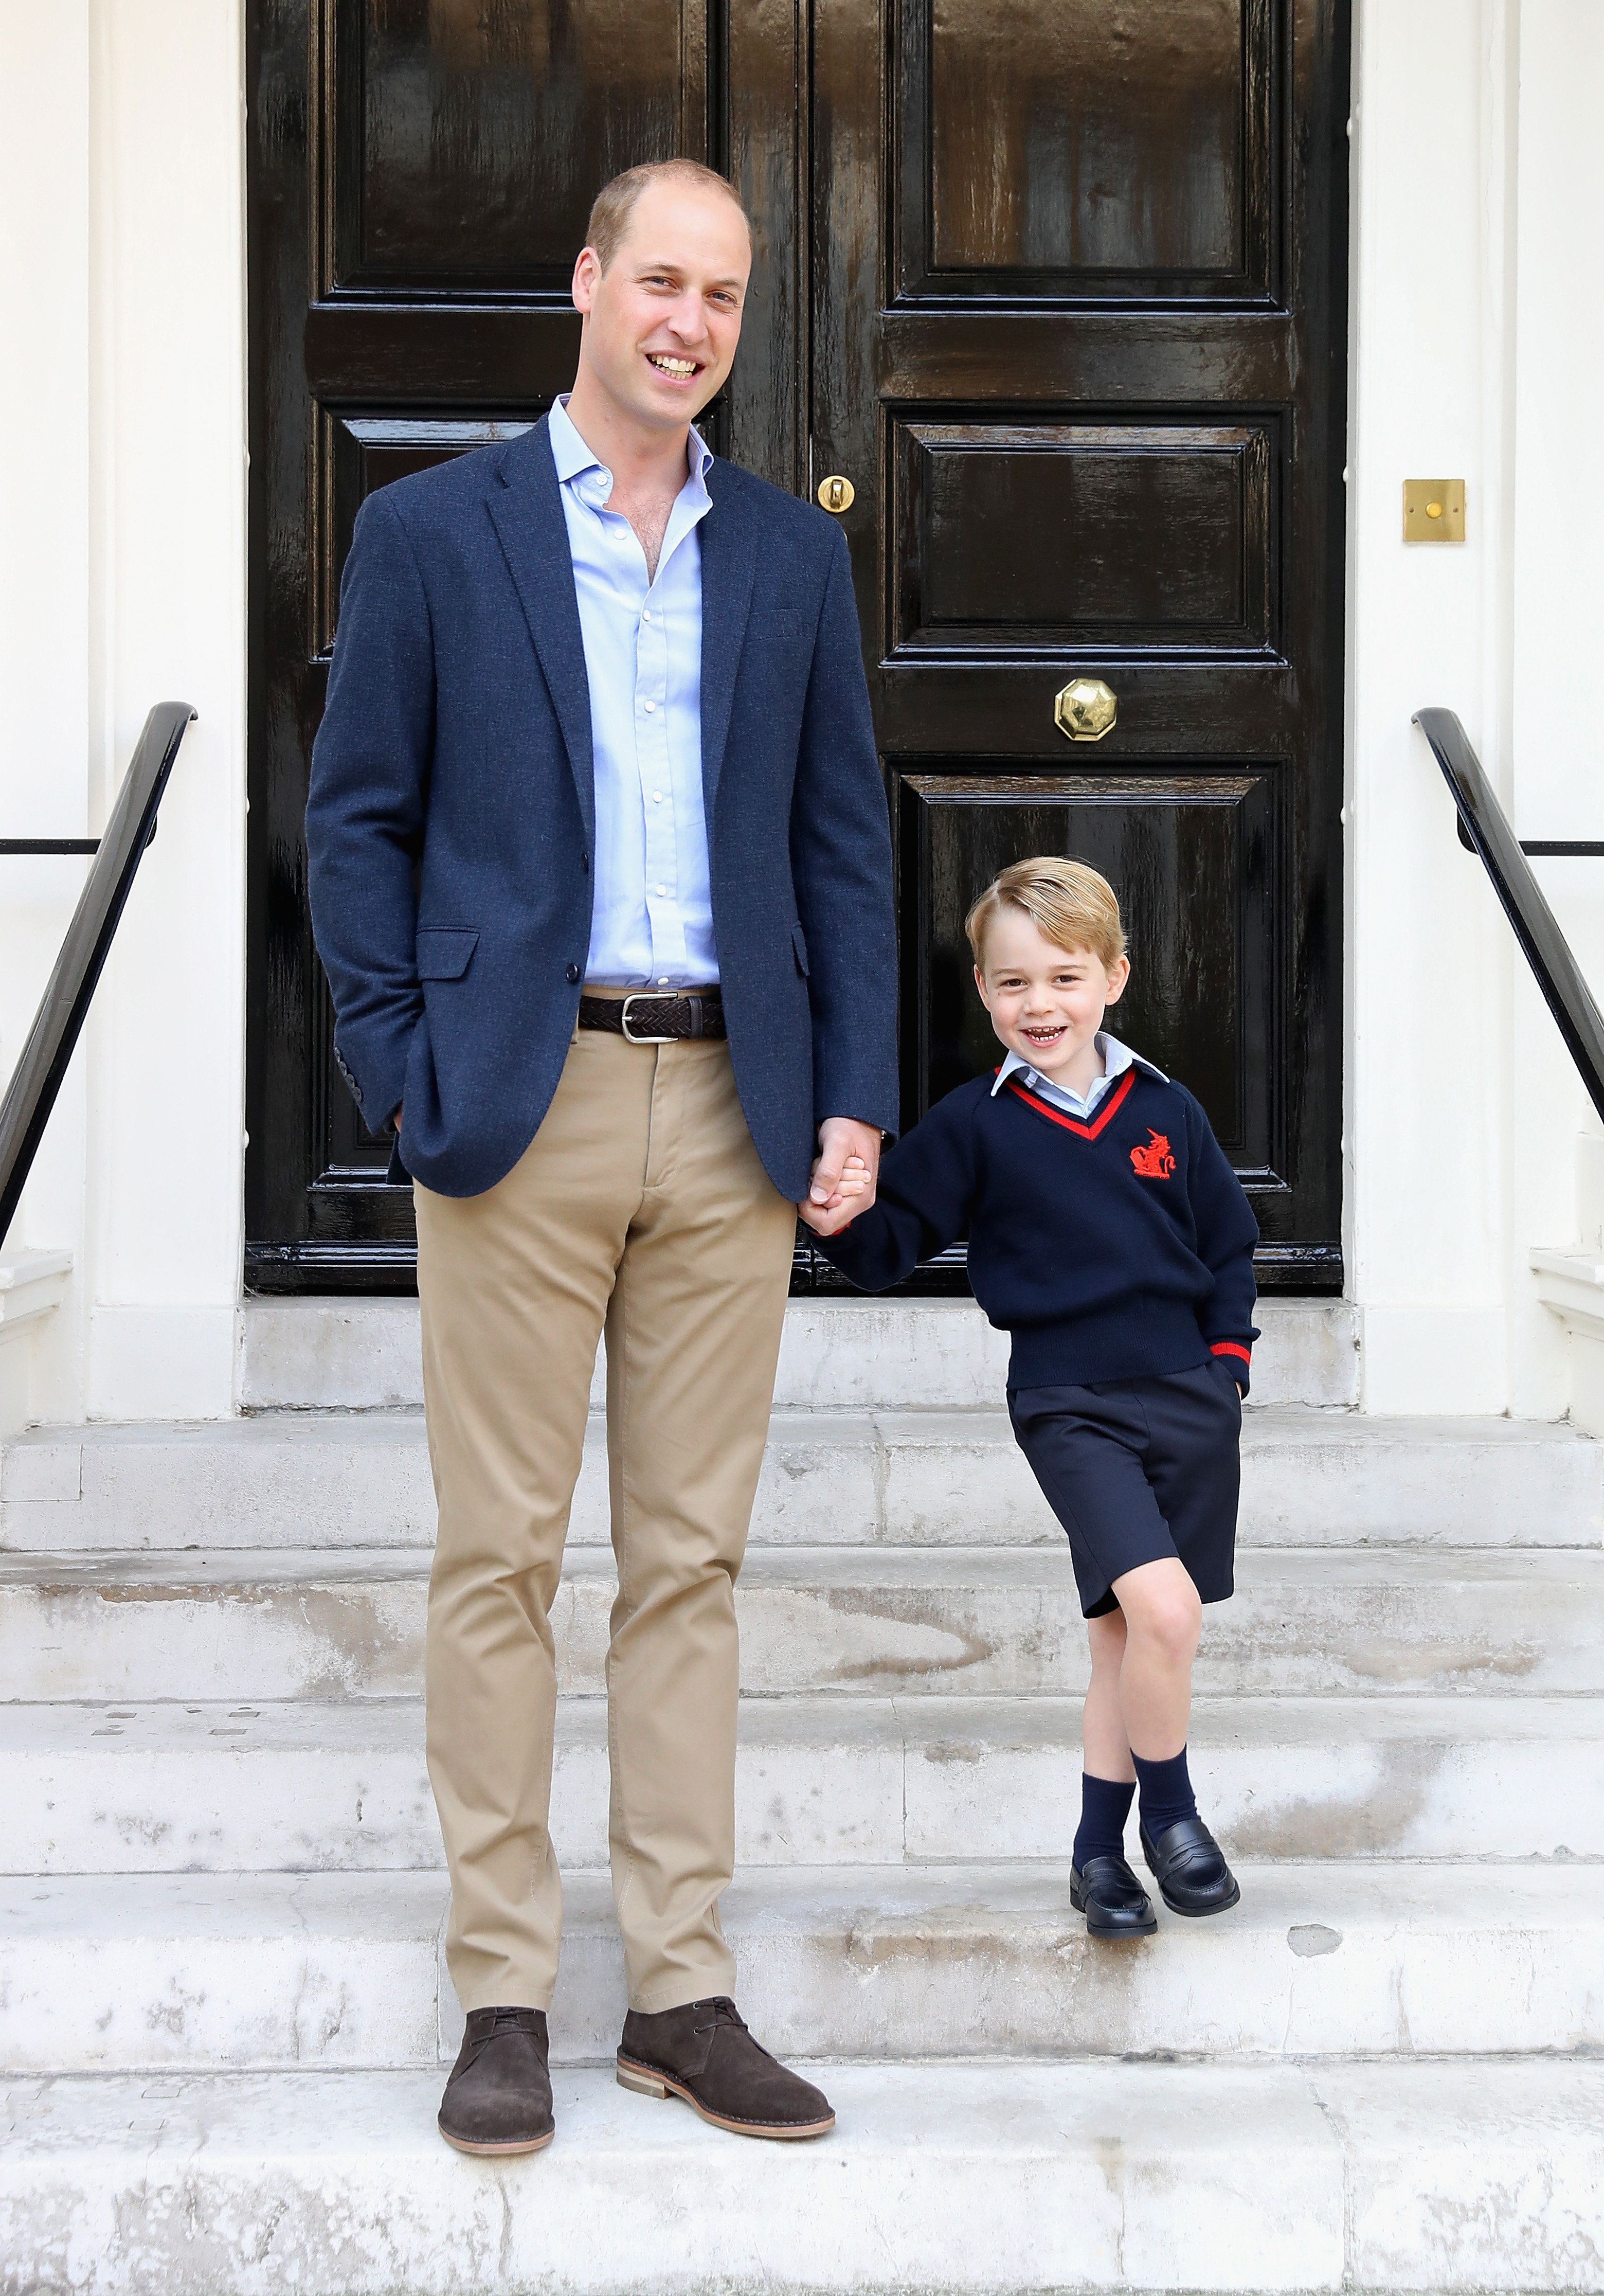 Prince William with his son Prince George on his first day of school on September 7, 2017, in London, England. The picture wa